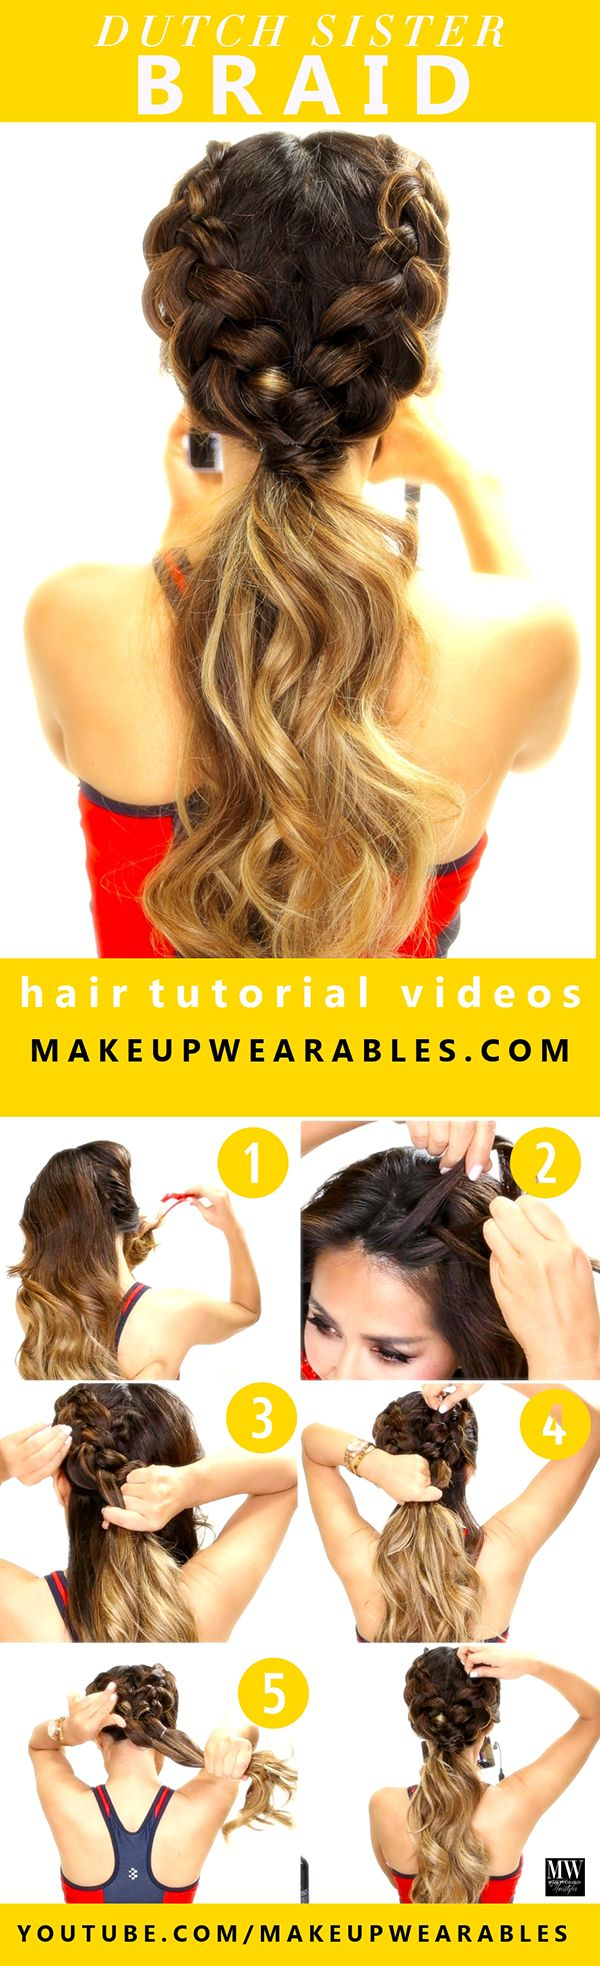 20 Easy No-Heat Summer Hairstyles For Girls With Long Hair JeweBlog